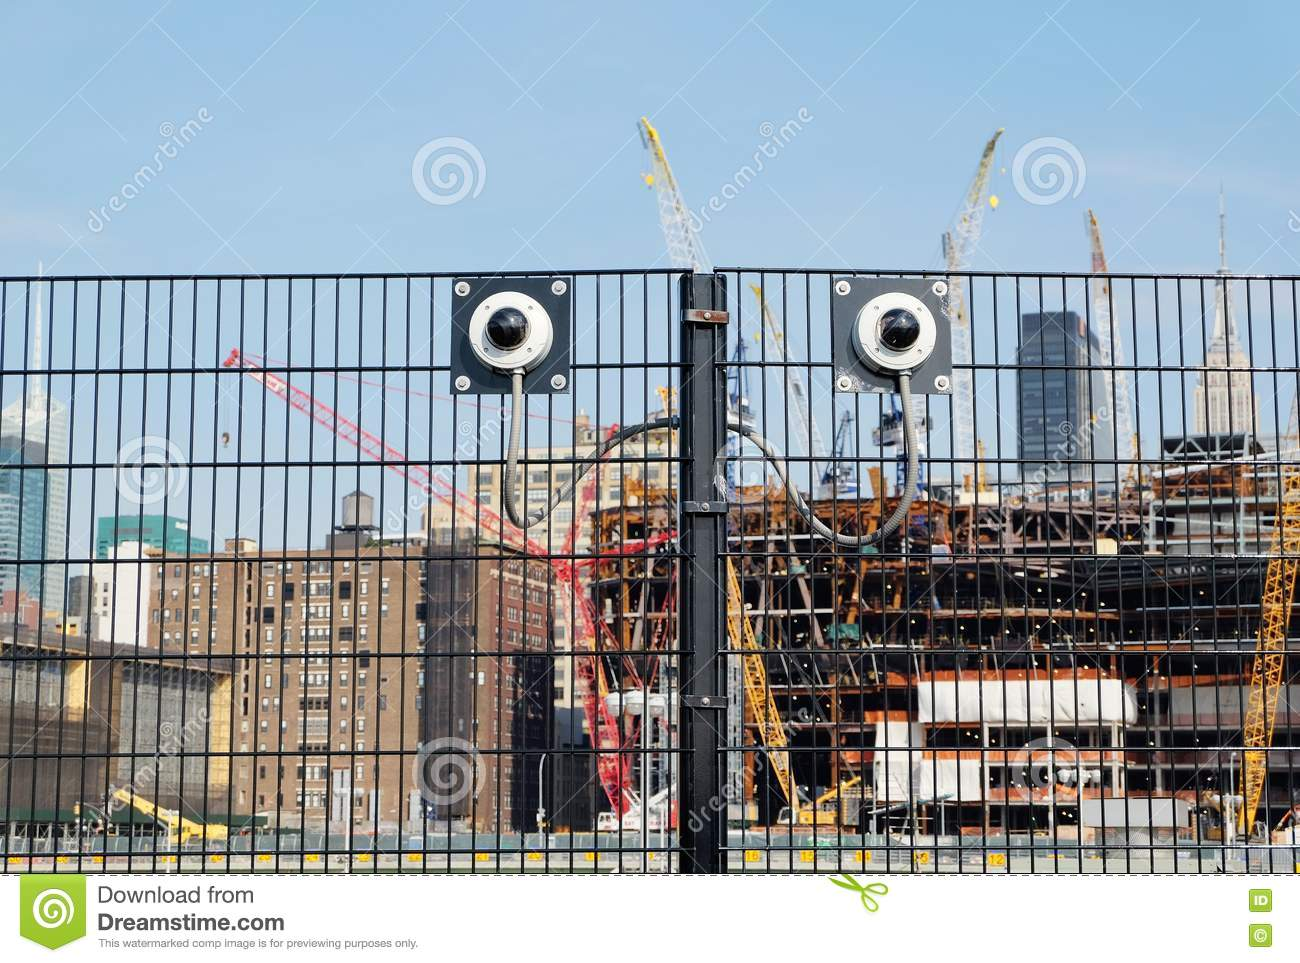 Cctv security cameras on a fence stock photo image